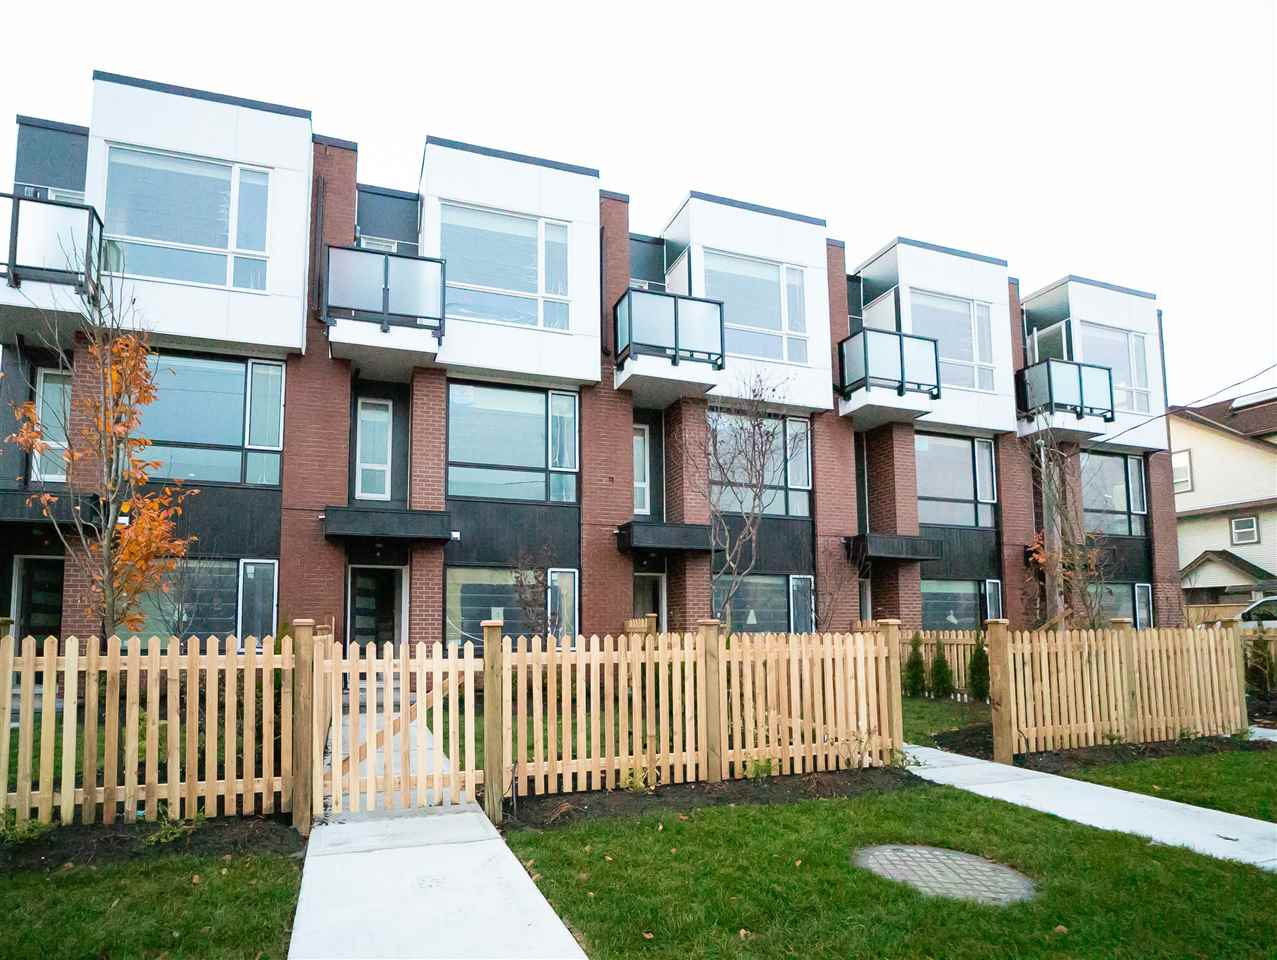 Buliding: 22711 Westminster Highway, Richmond, BC